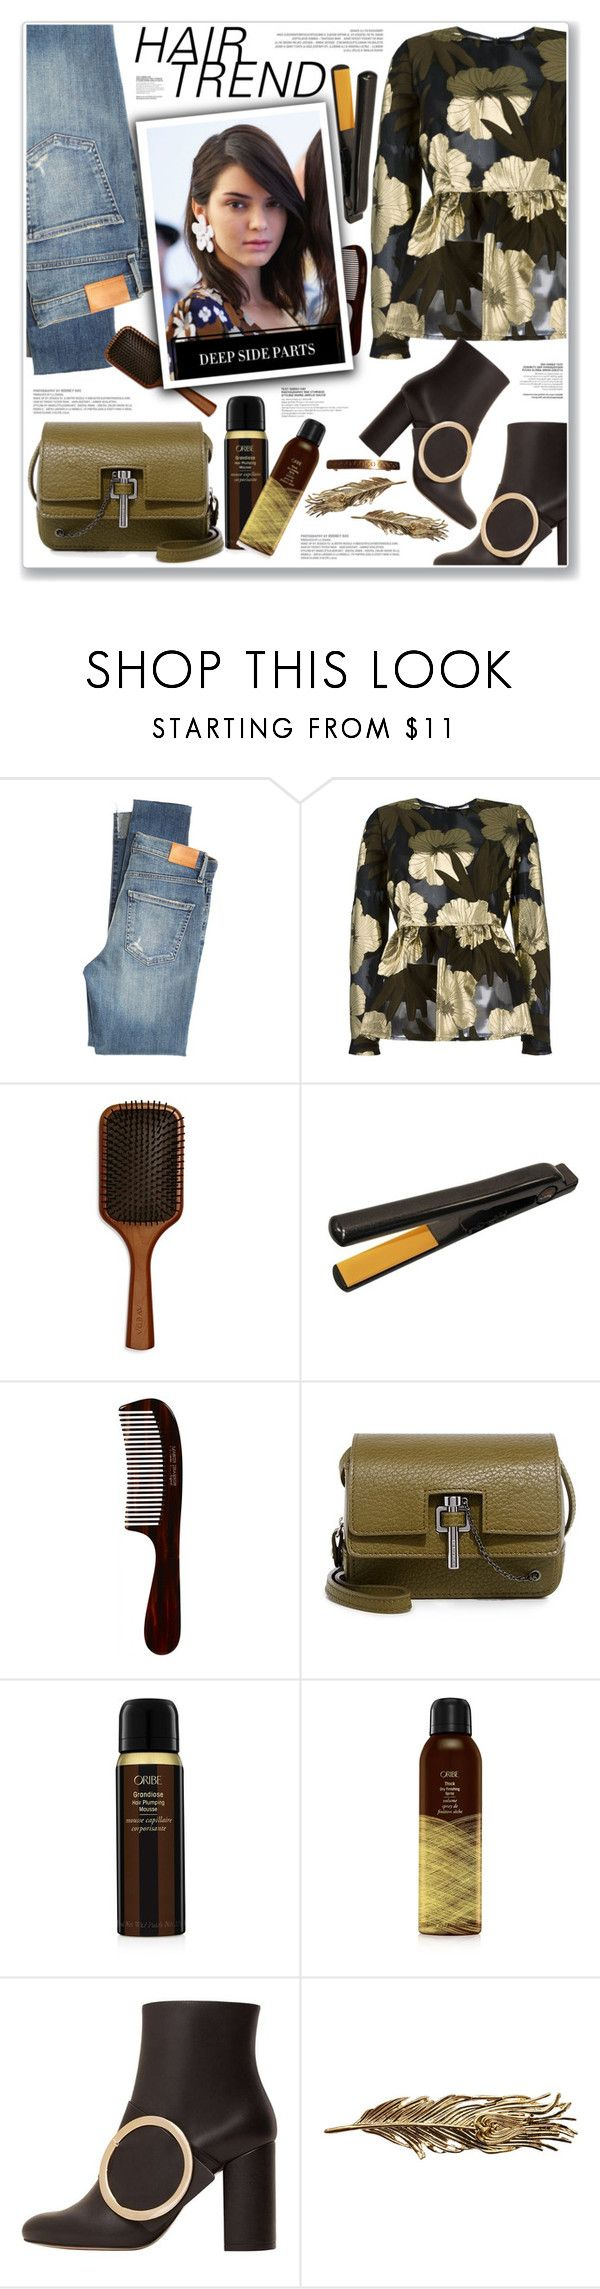 """HAIR TREND"" by nanawidia ❤ liked on Polyvore featuring beauty, Citizens of Humanity, P.A.R.O.S.H., Aveda, CHI, Mason Pearson, Carven, Oribe, MANGO and Johnny Loves Rosie"